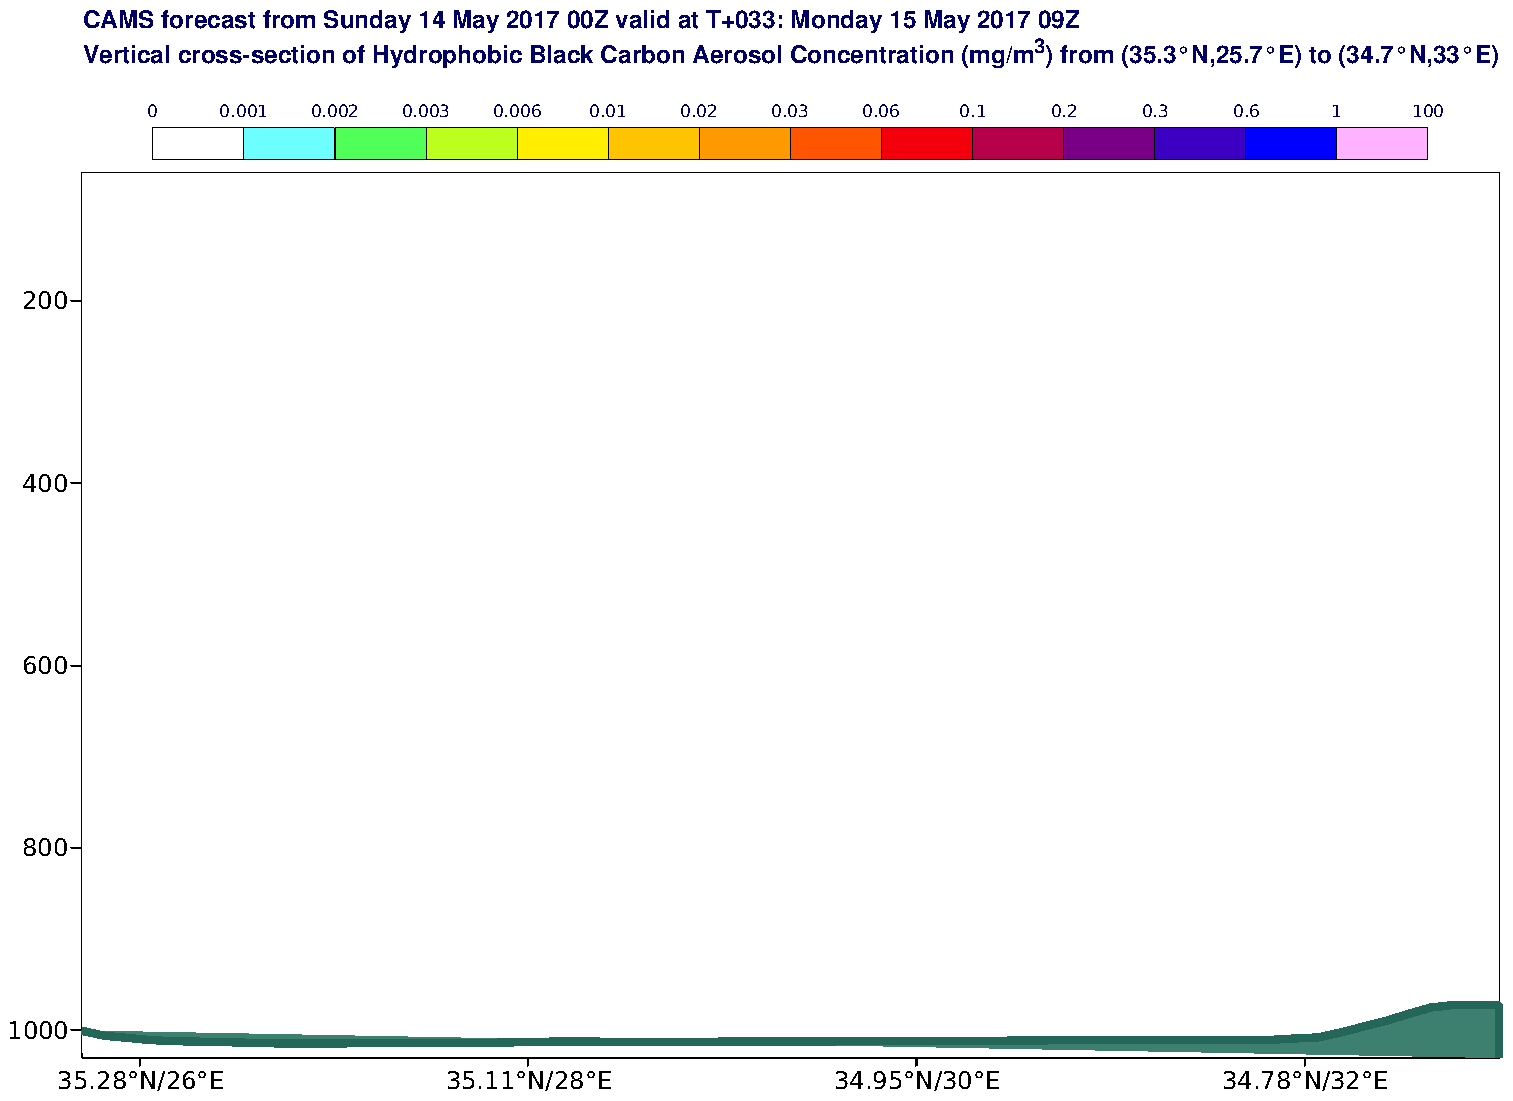 Vertical cross-section of Hydrophobic Black Carbon Aerosol Concentration (mg/m3) valid at T33 - 2017-05-15 09:00